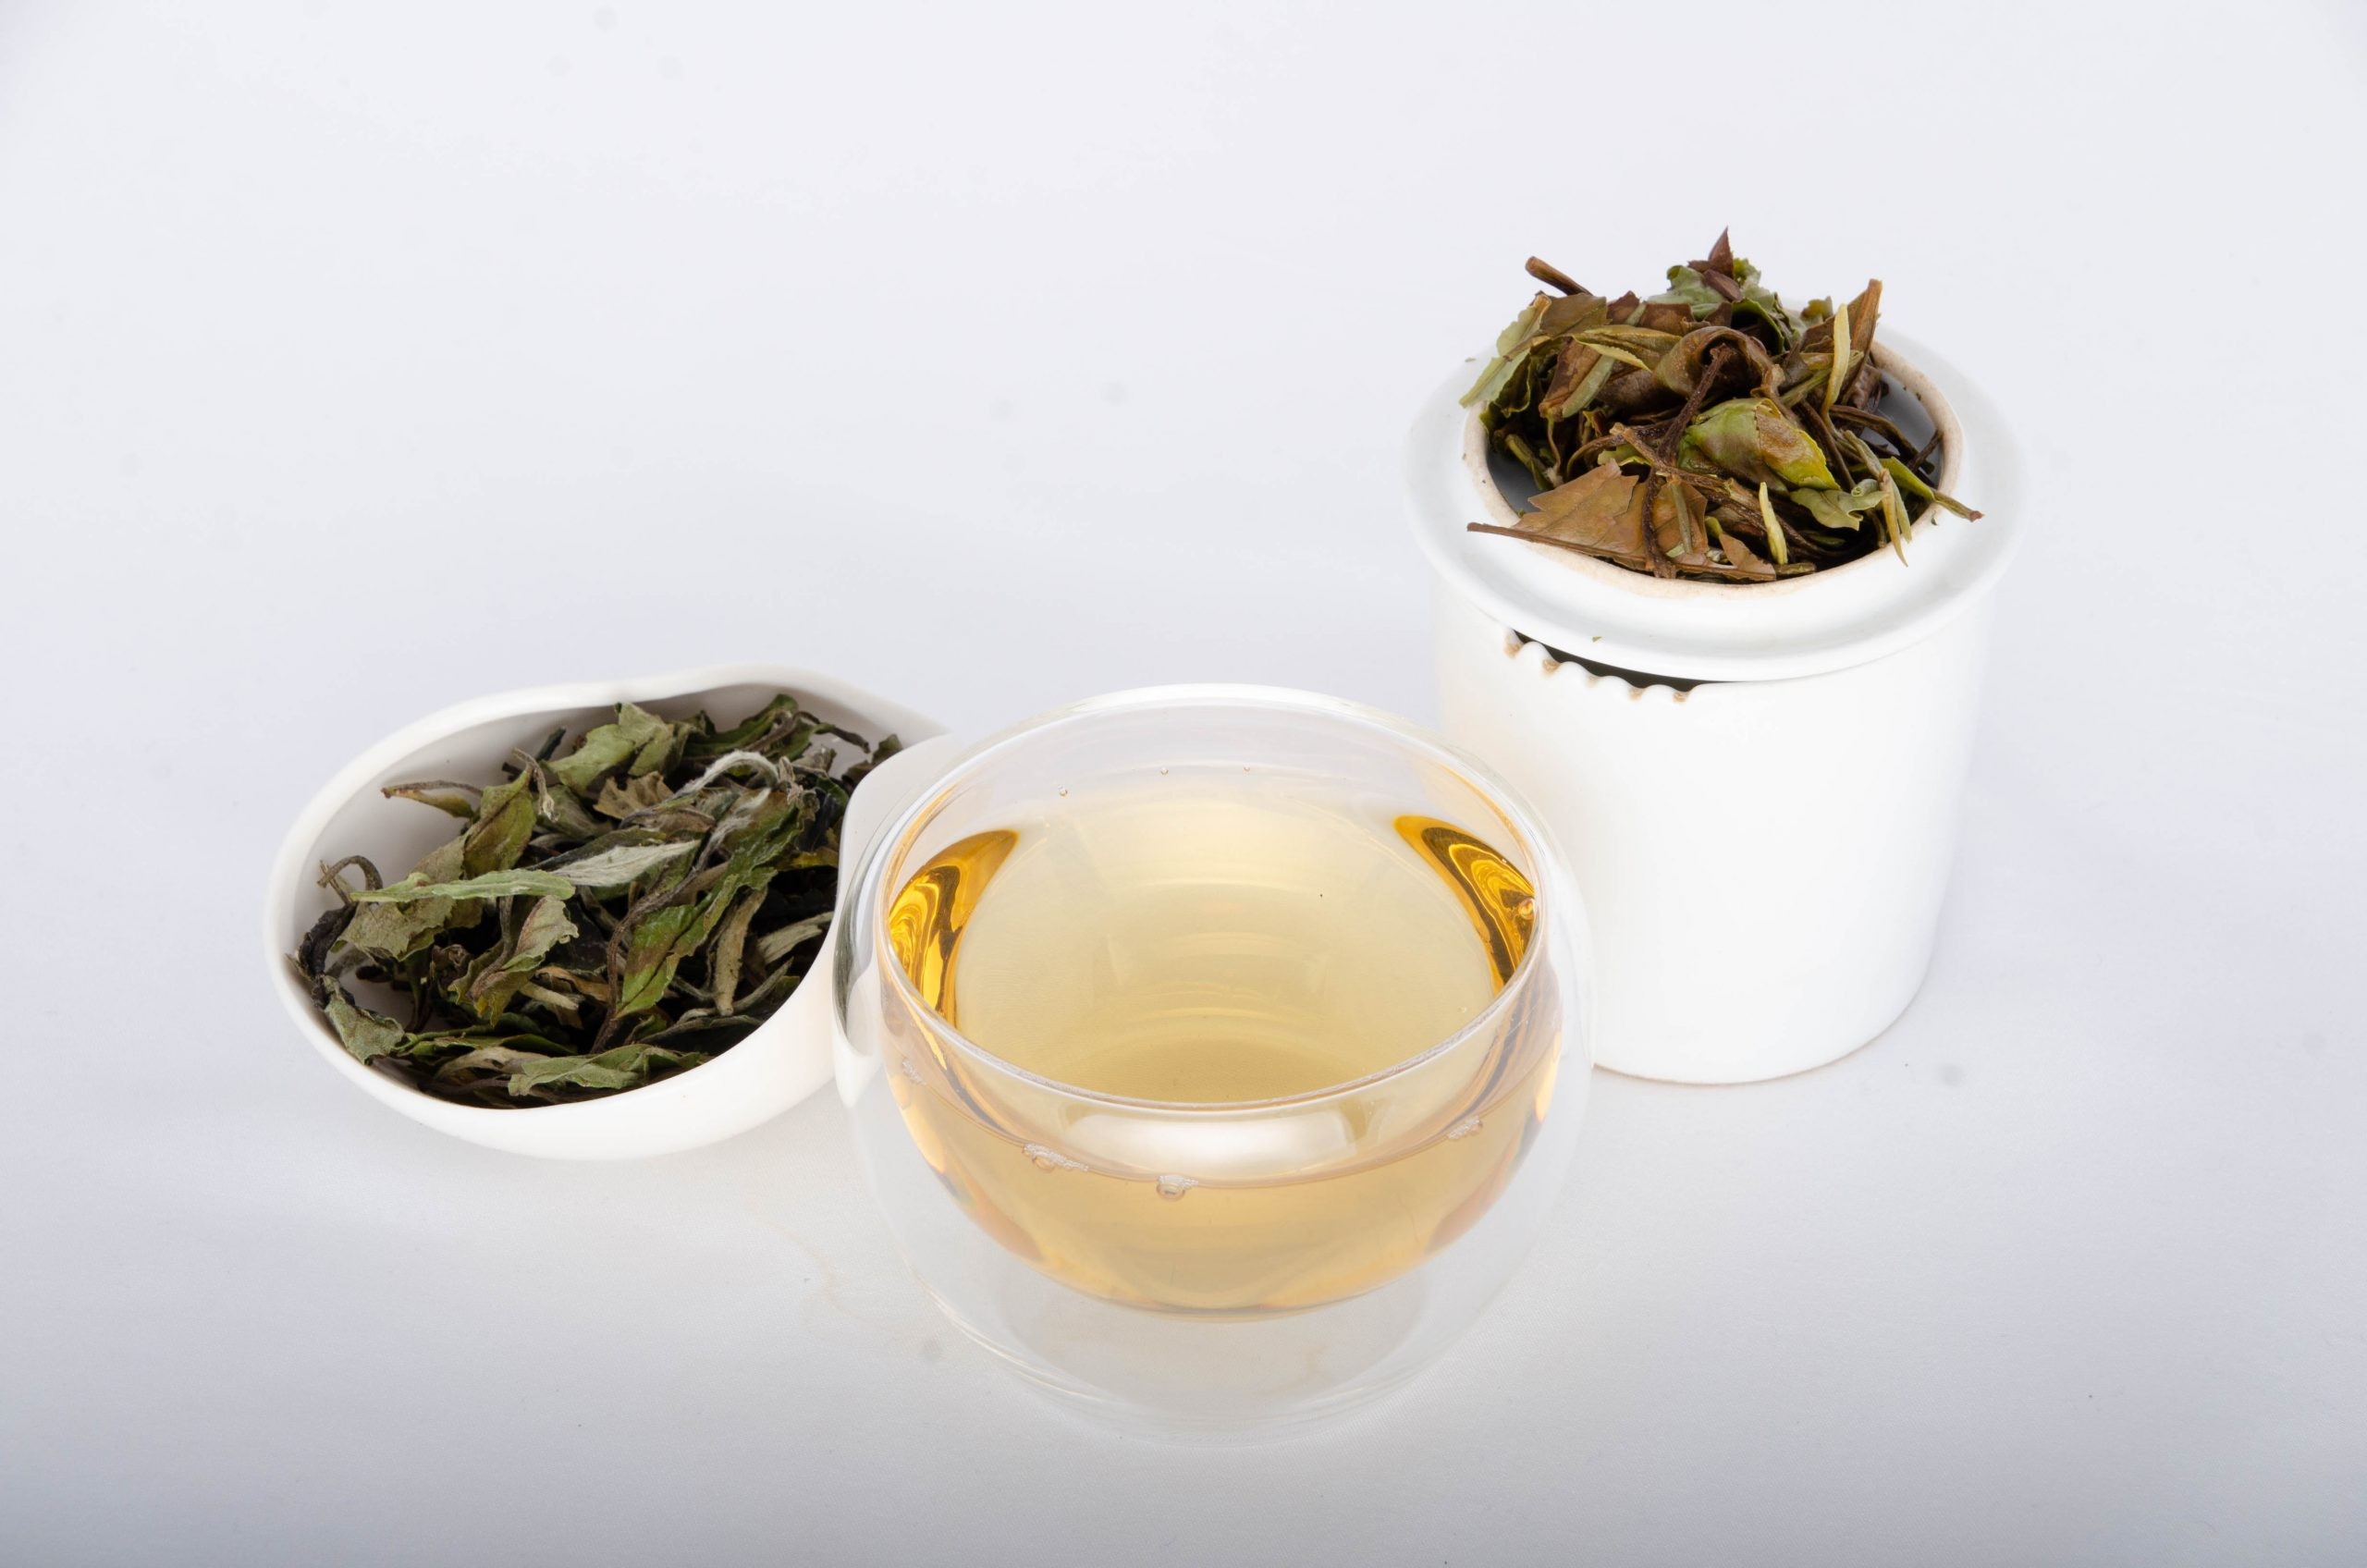 Bai Mu Dan White Tea - JoJo Tea - bud and first two leaves, sun-dried